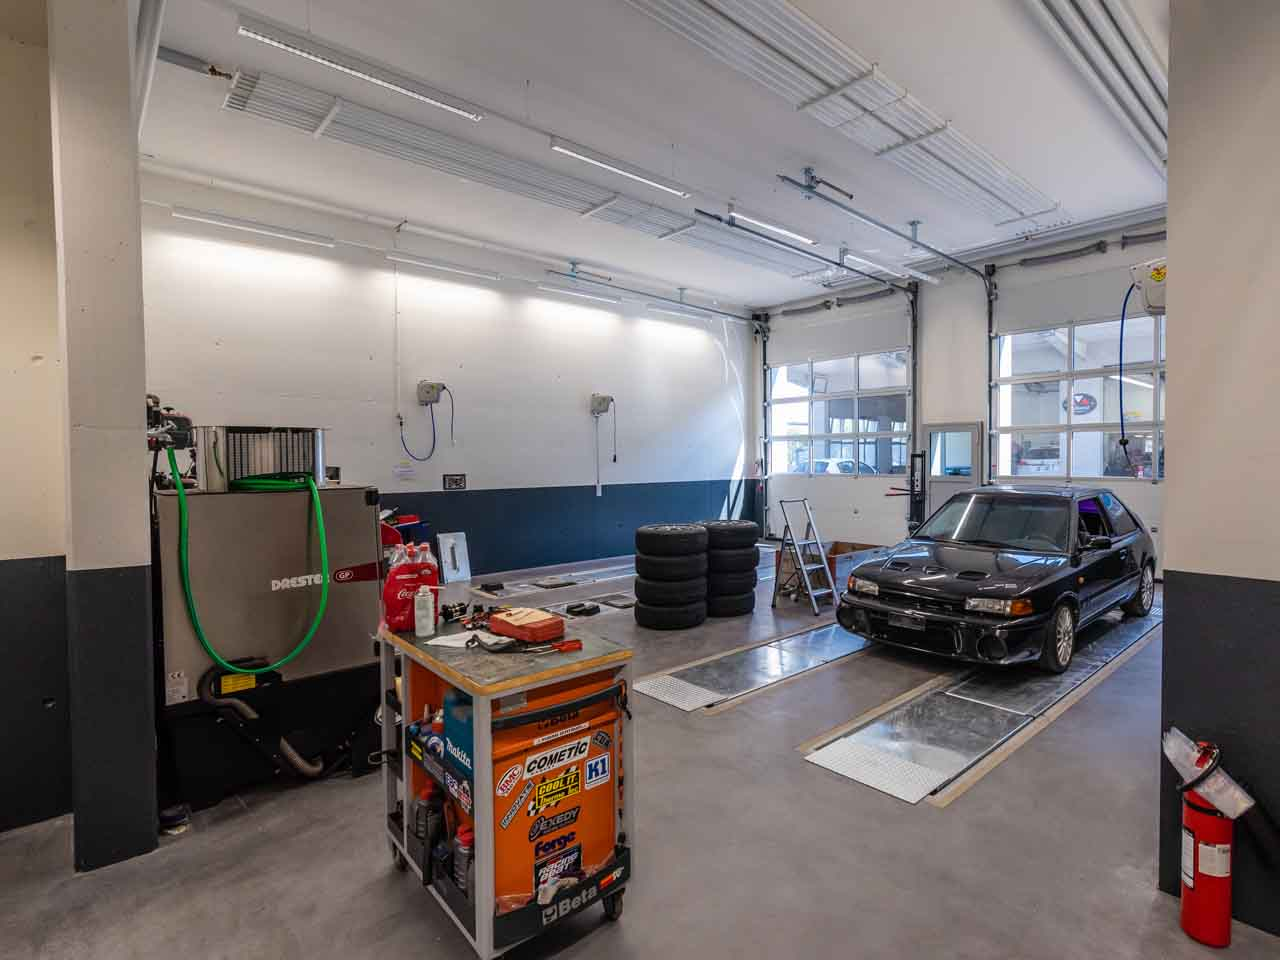 https://garagebienz.mazda.ch/wp-content/uploads/sites/48/2019/12/garage-bienz-neubau-1280x960_3.jpg